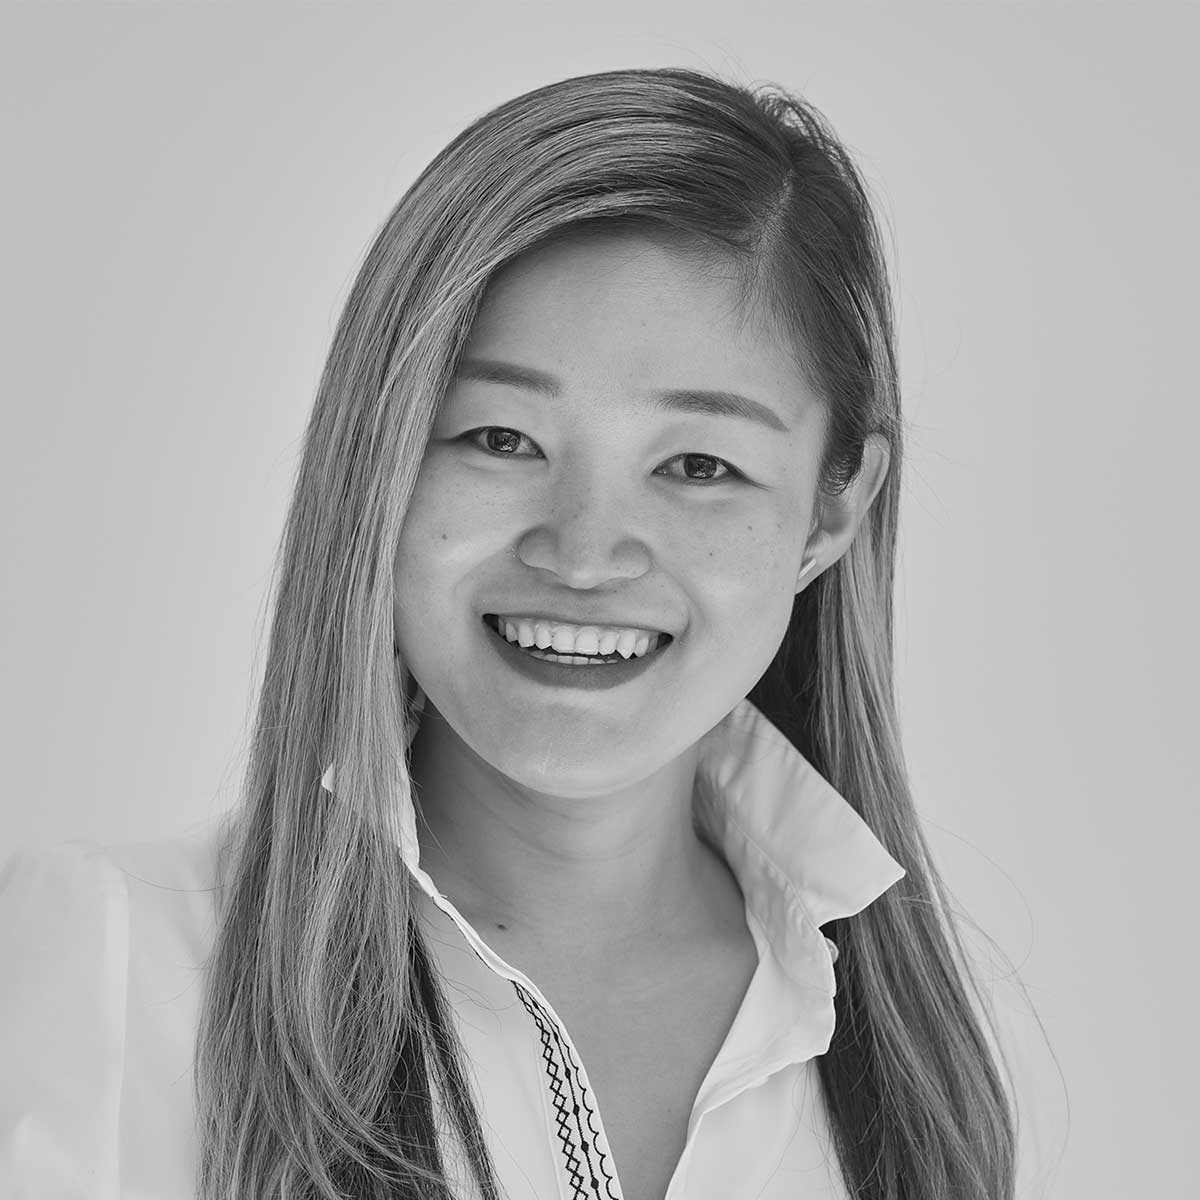 AJK Outfitters, Vivian Zhang, Senior Contracts Manager